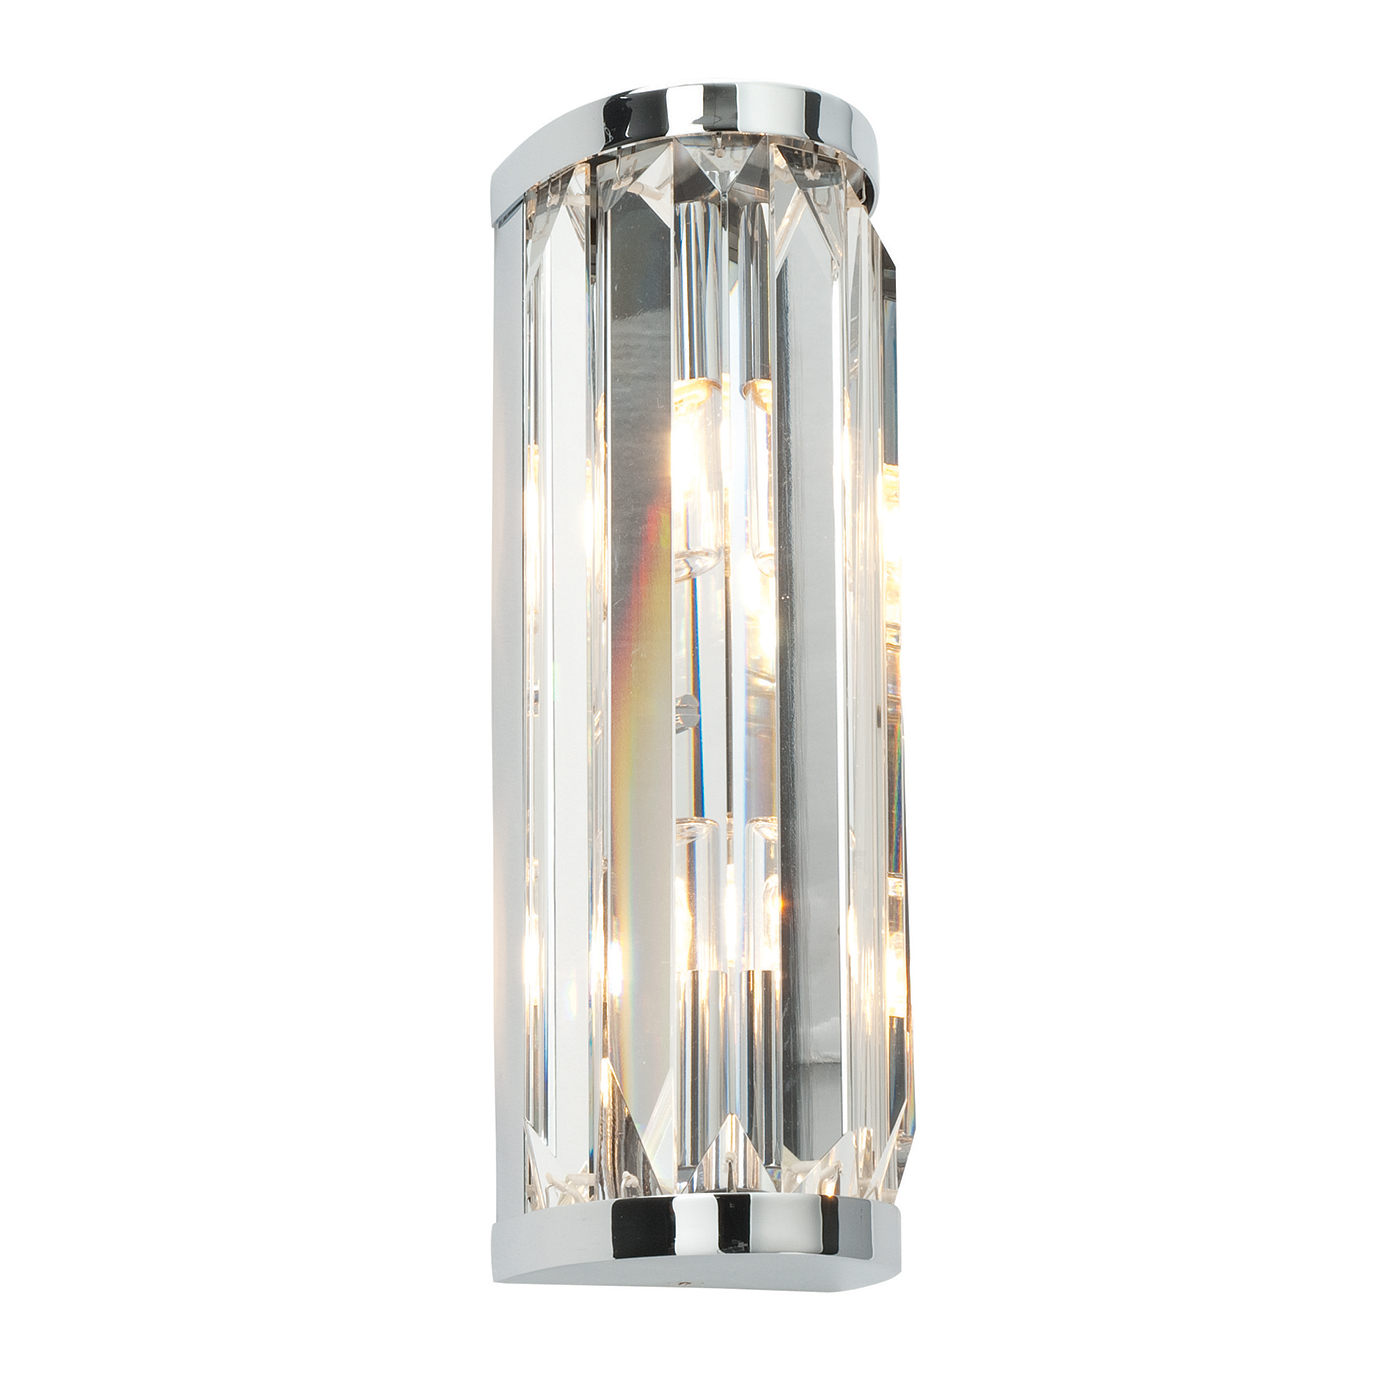 Endon Crystal 2lt bathroom wall light IP44 18W Chrome & clear crystal (k9) glass